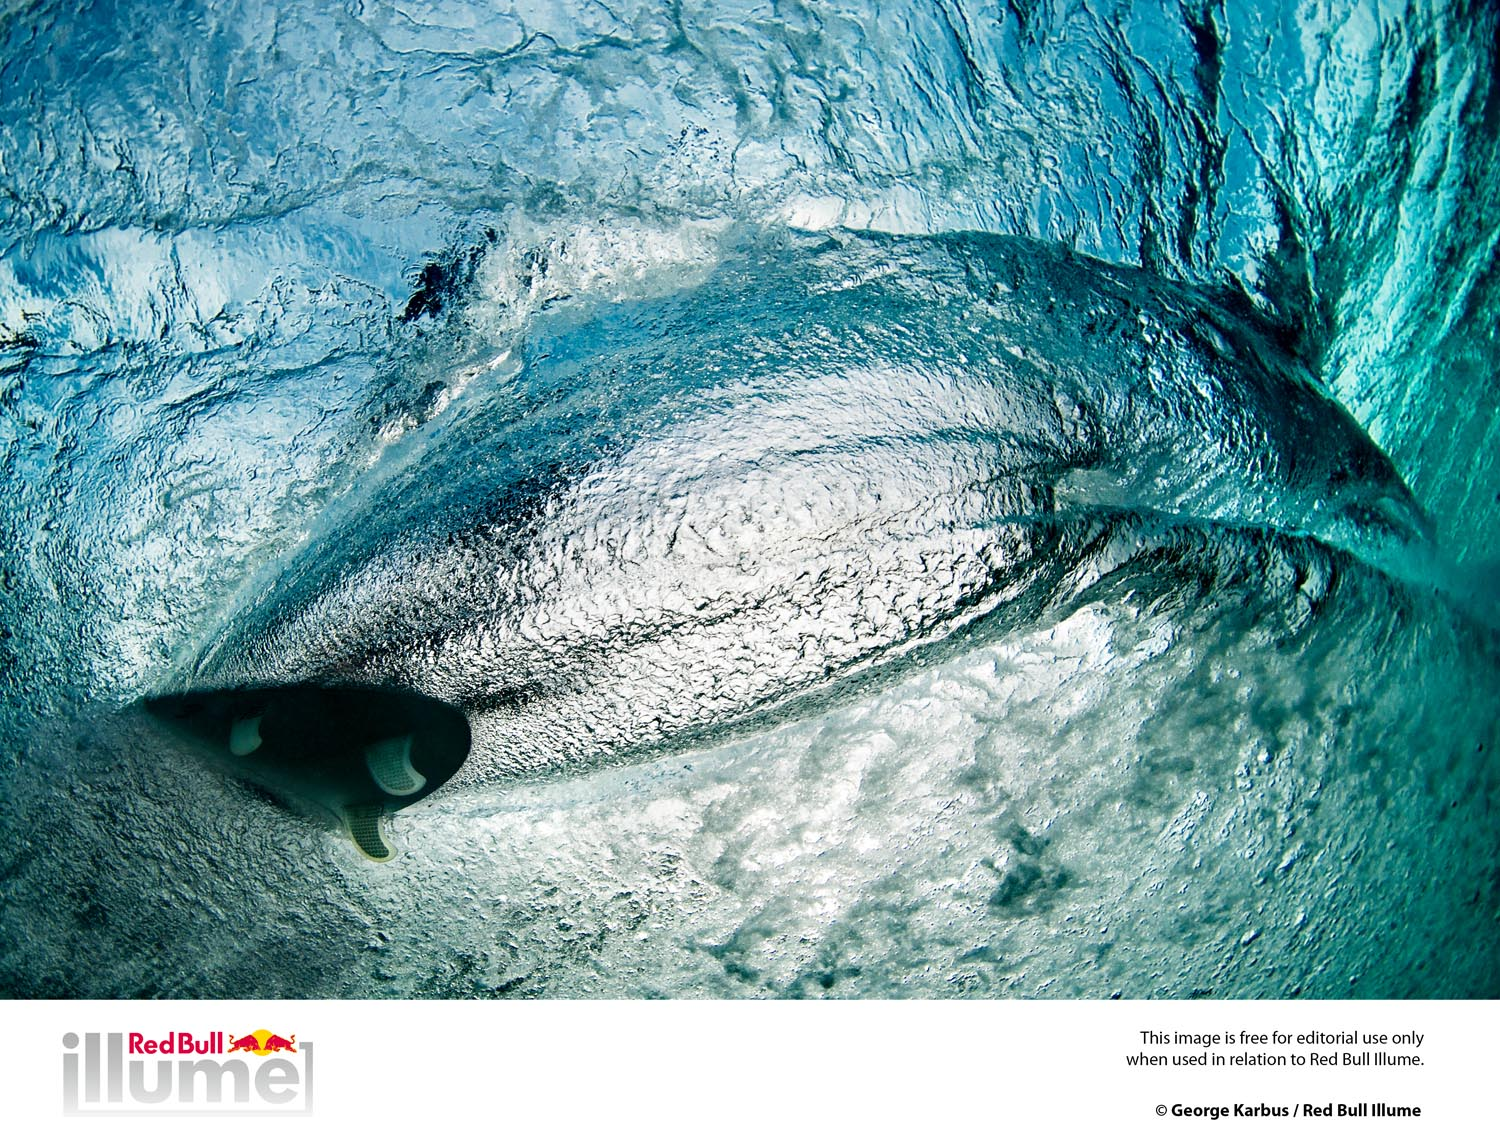 ©George Karbus / 2013 Red Bull Illume Close Up Category Finalist Photo